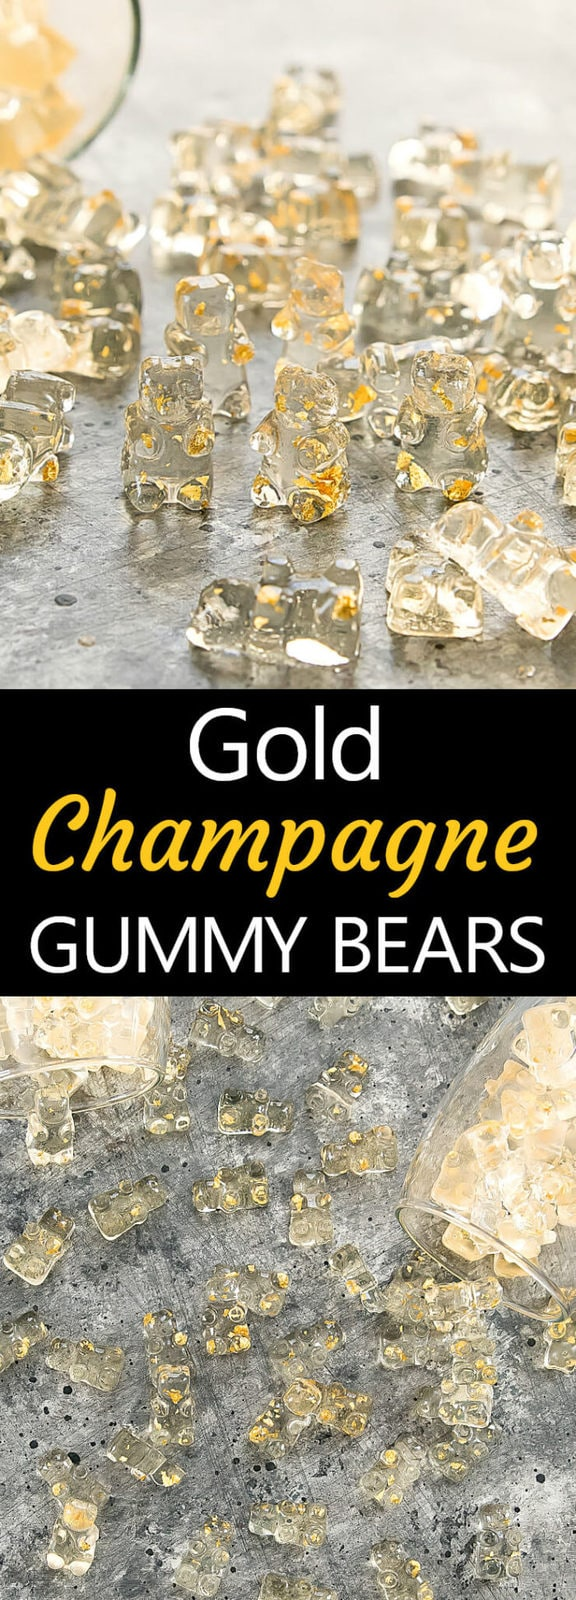 Gold Champagne Gummy Bears